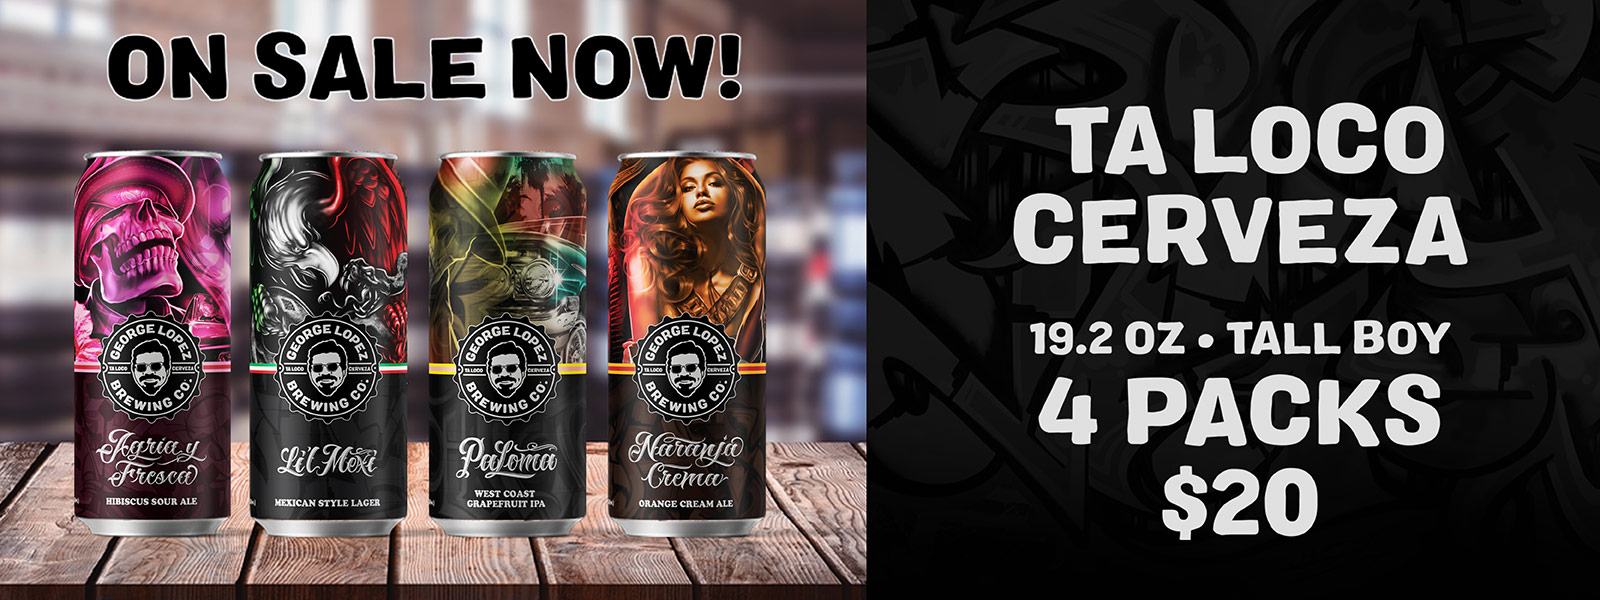 Ta Loco Cerveza on sale now! 19.2 oz tall boy 4-packs $20